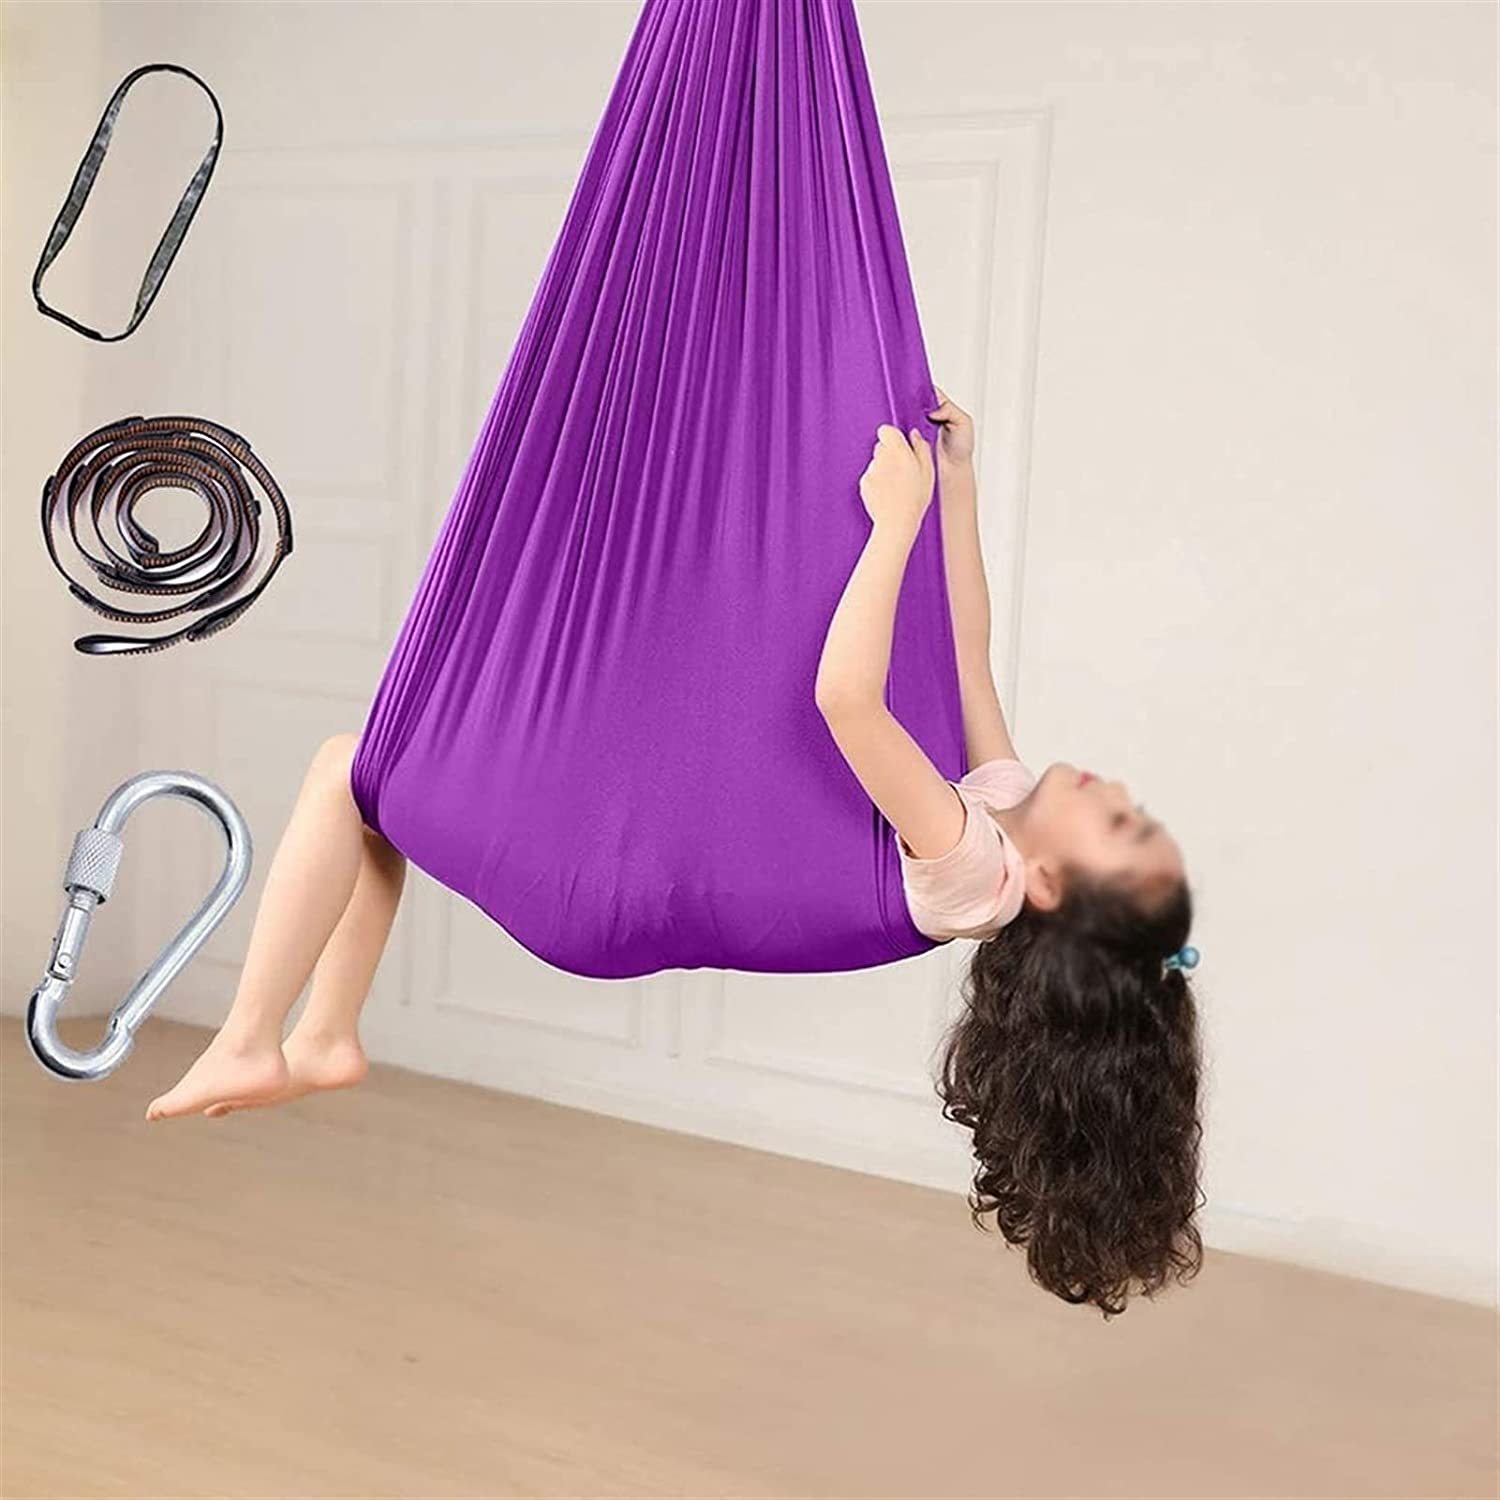 At the price of surprise YUDIZWS Snuggle Hanging Cuddle Hammock Sale Special Price Swi Adults Indoor Sensory